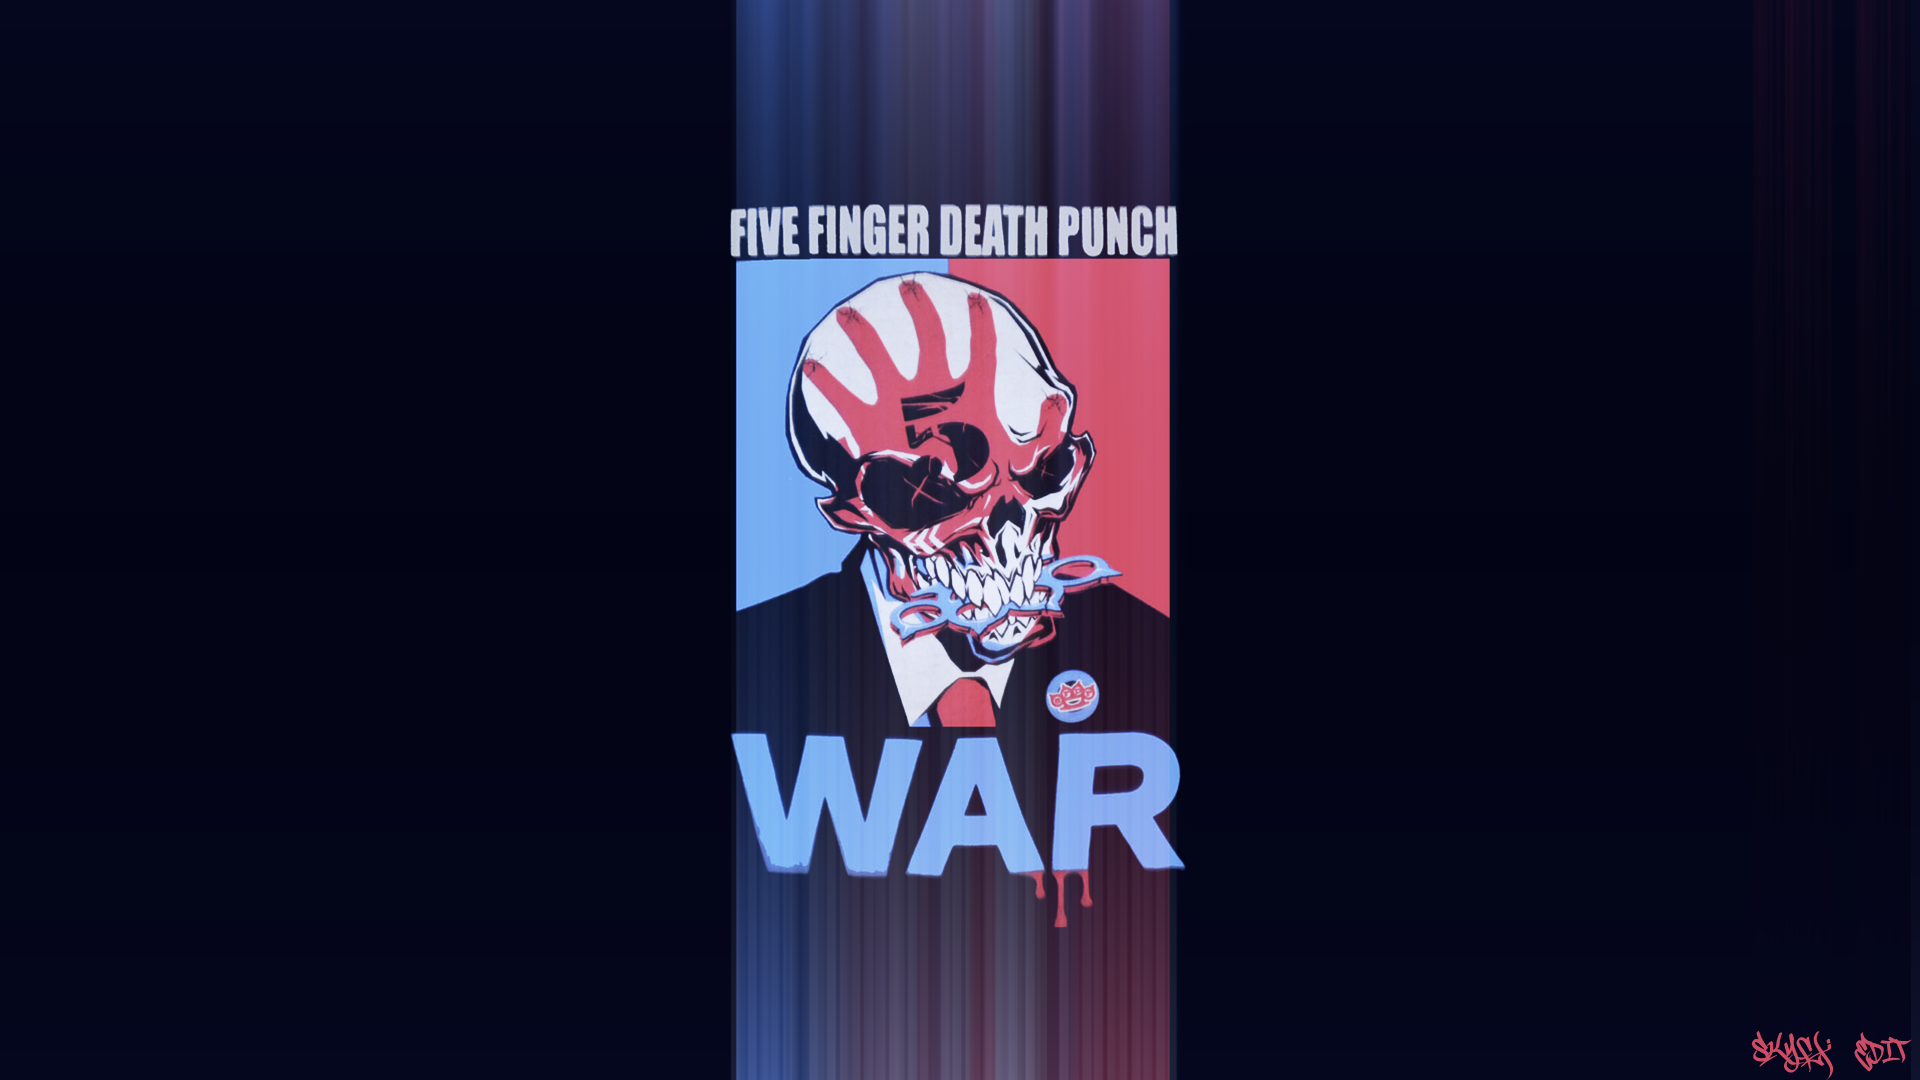 Five Finger Death Punch War Wallpaper Edit By Theskyfx On Deviantart